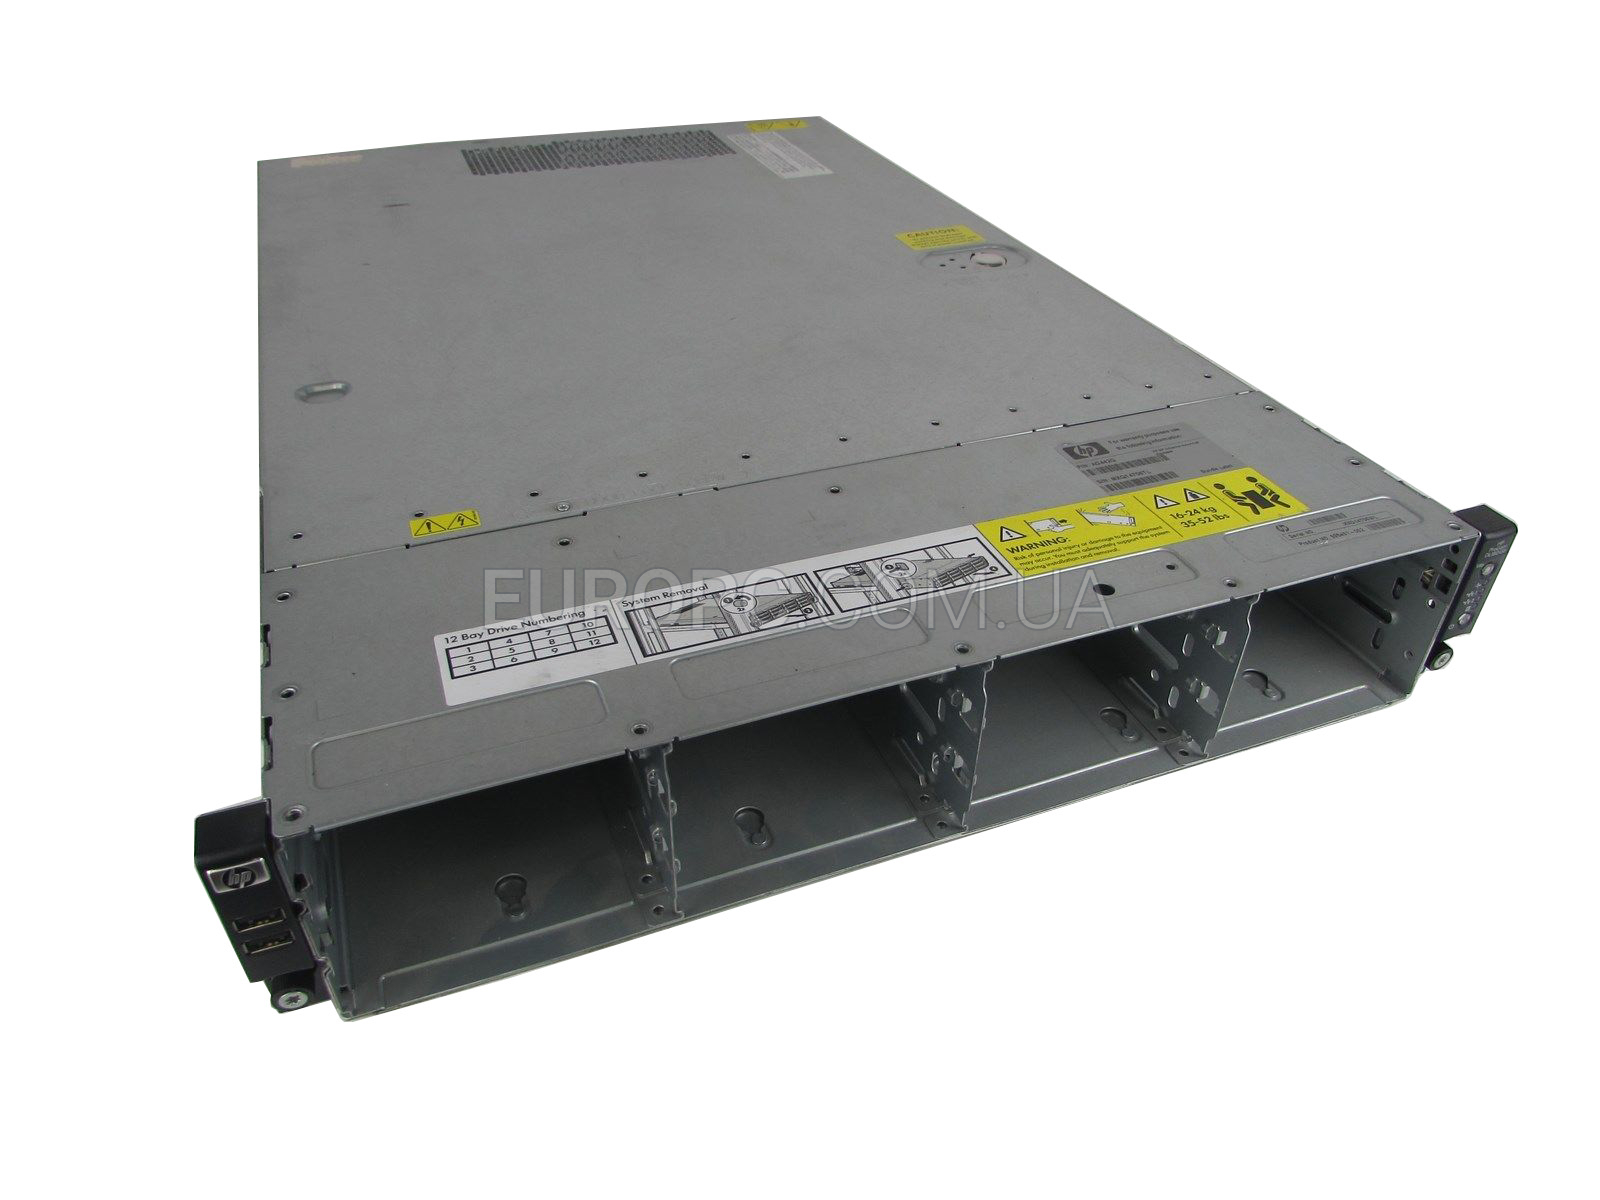 HP Proliant DL 180 G6 фото - EuroPC